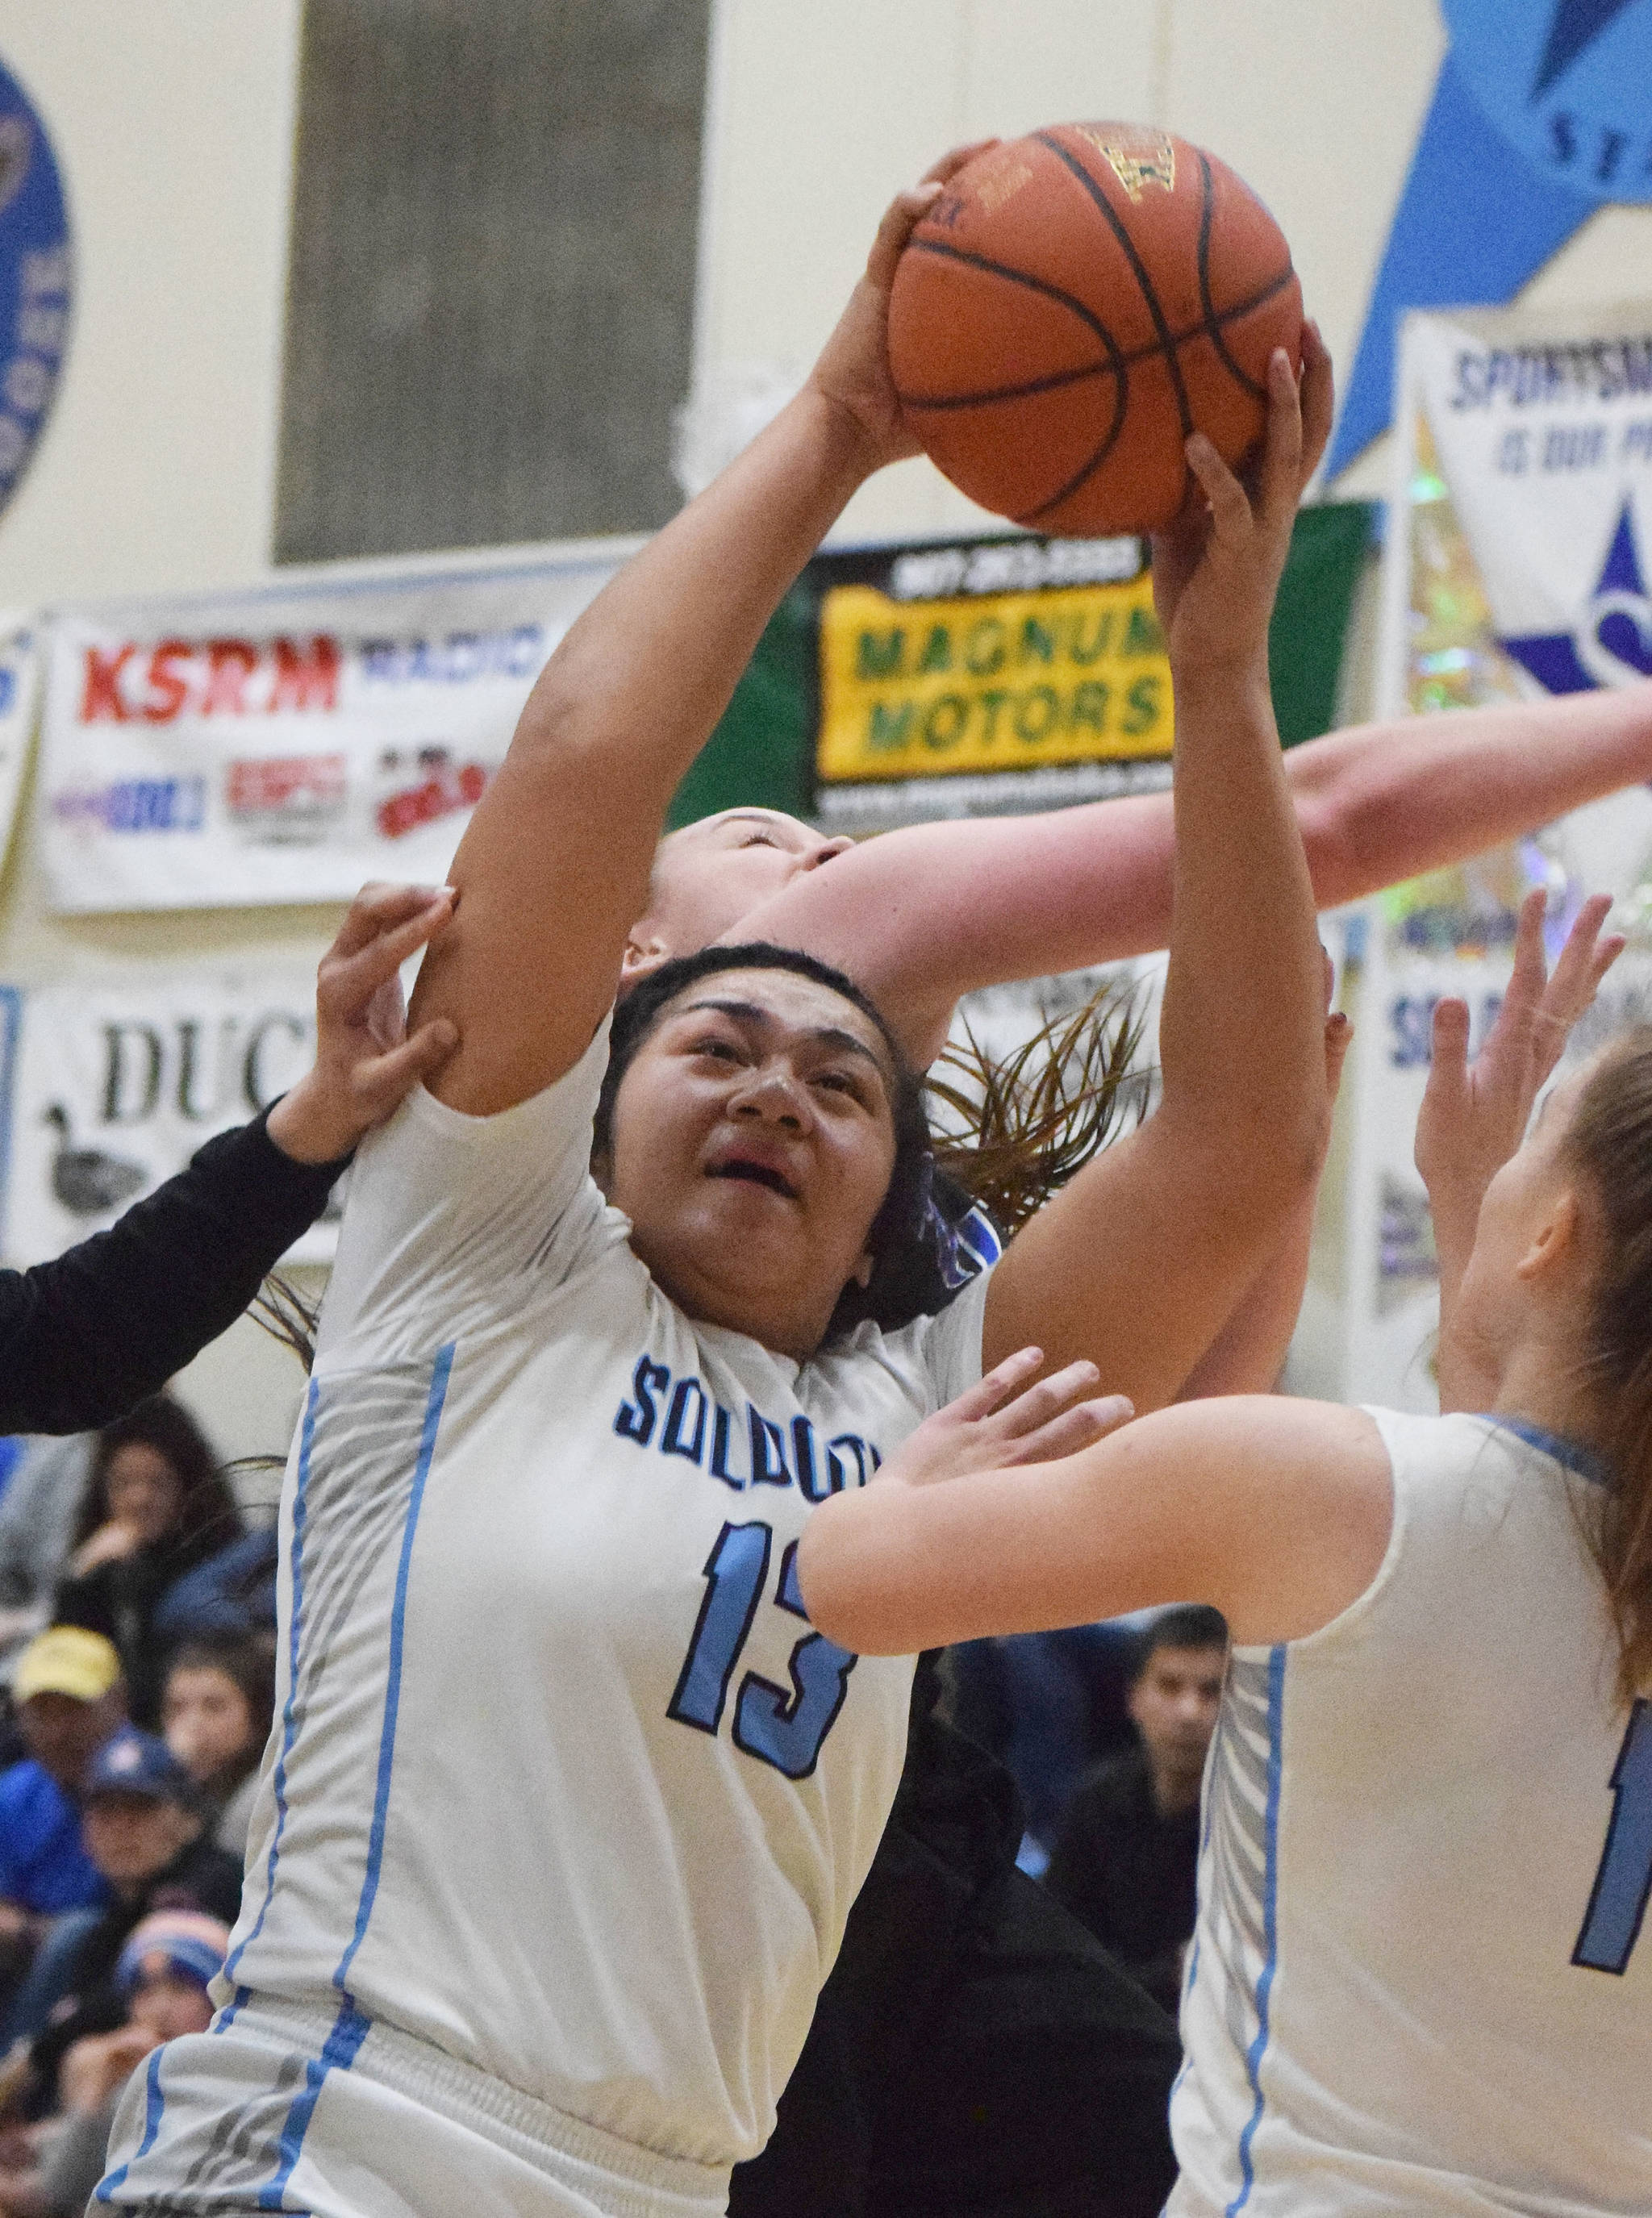 Soldotna's Ituau Tuisaula (13) grabs a rebound Friday night in the Northern Lights Conference semifinals against Palmer at Soldotna High School. (Photo by Joey Klecka/Peninsula Clarion)